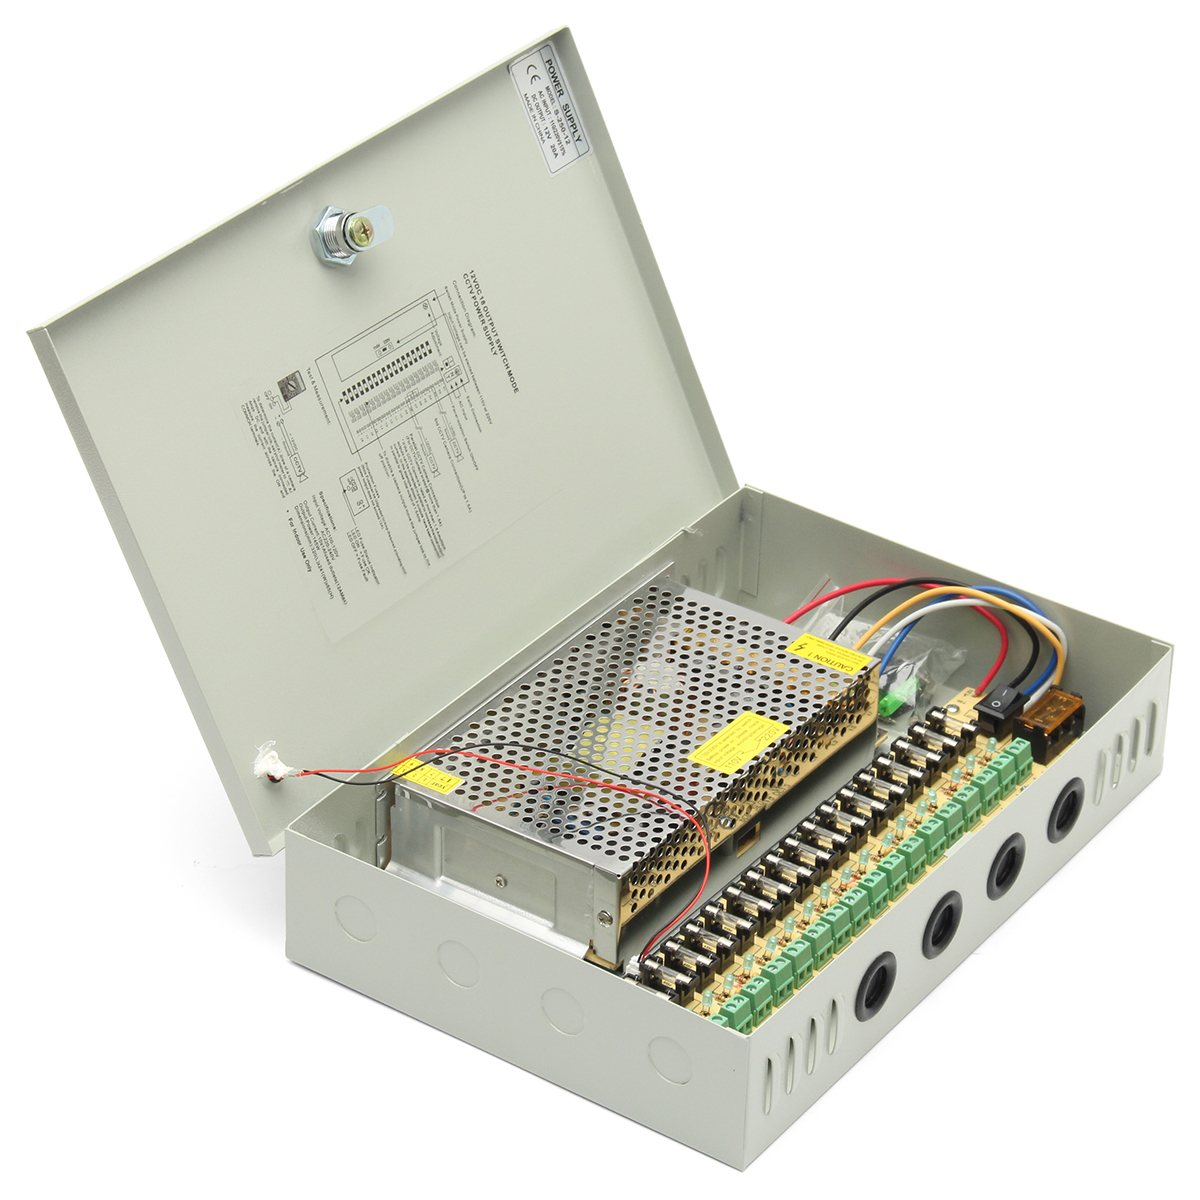 NEW Safurance 18 Channel 12V DC CCTV Security Cameras System Power Supply Distribution Switch Box Home Security Safety